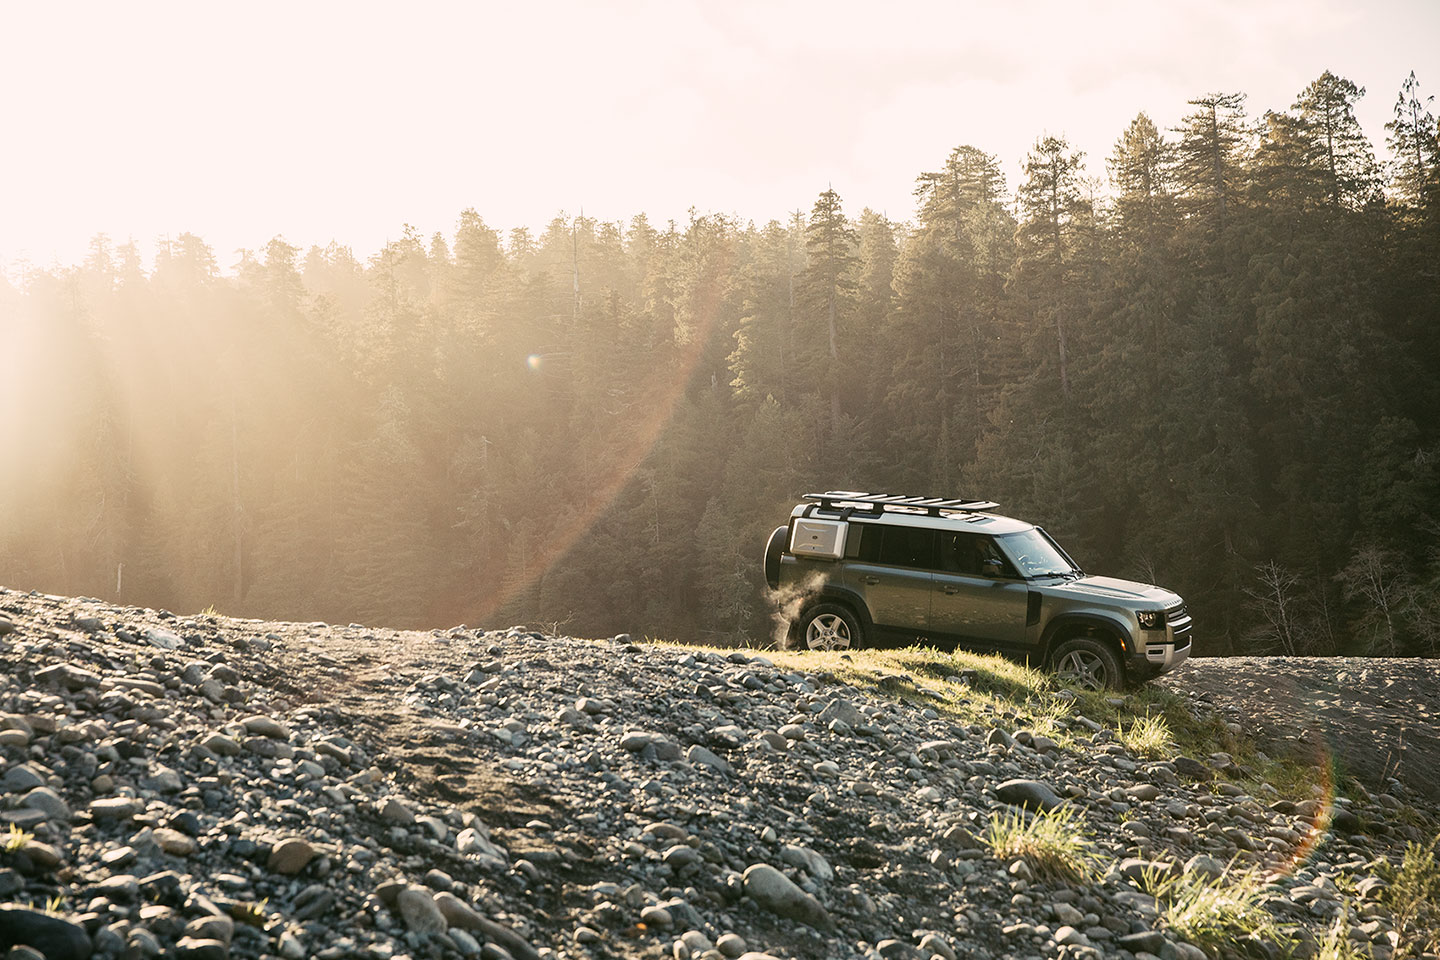 The new Land Rover Defender 110 off-roading in Jedediah Smith Redwoods State Park in Northern California